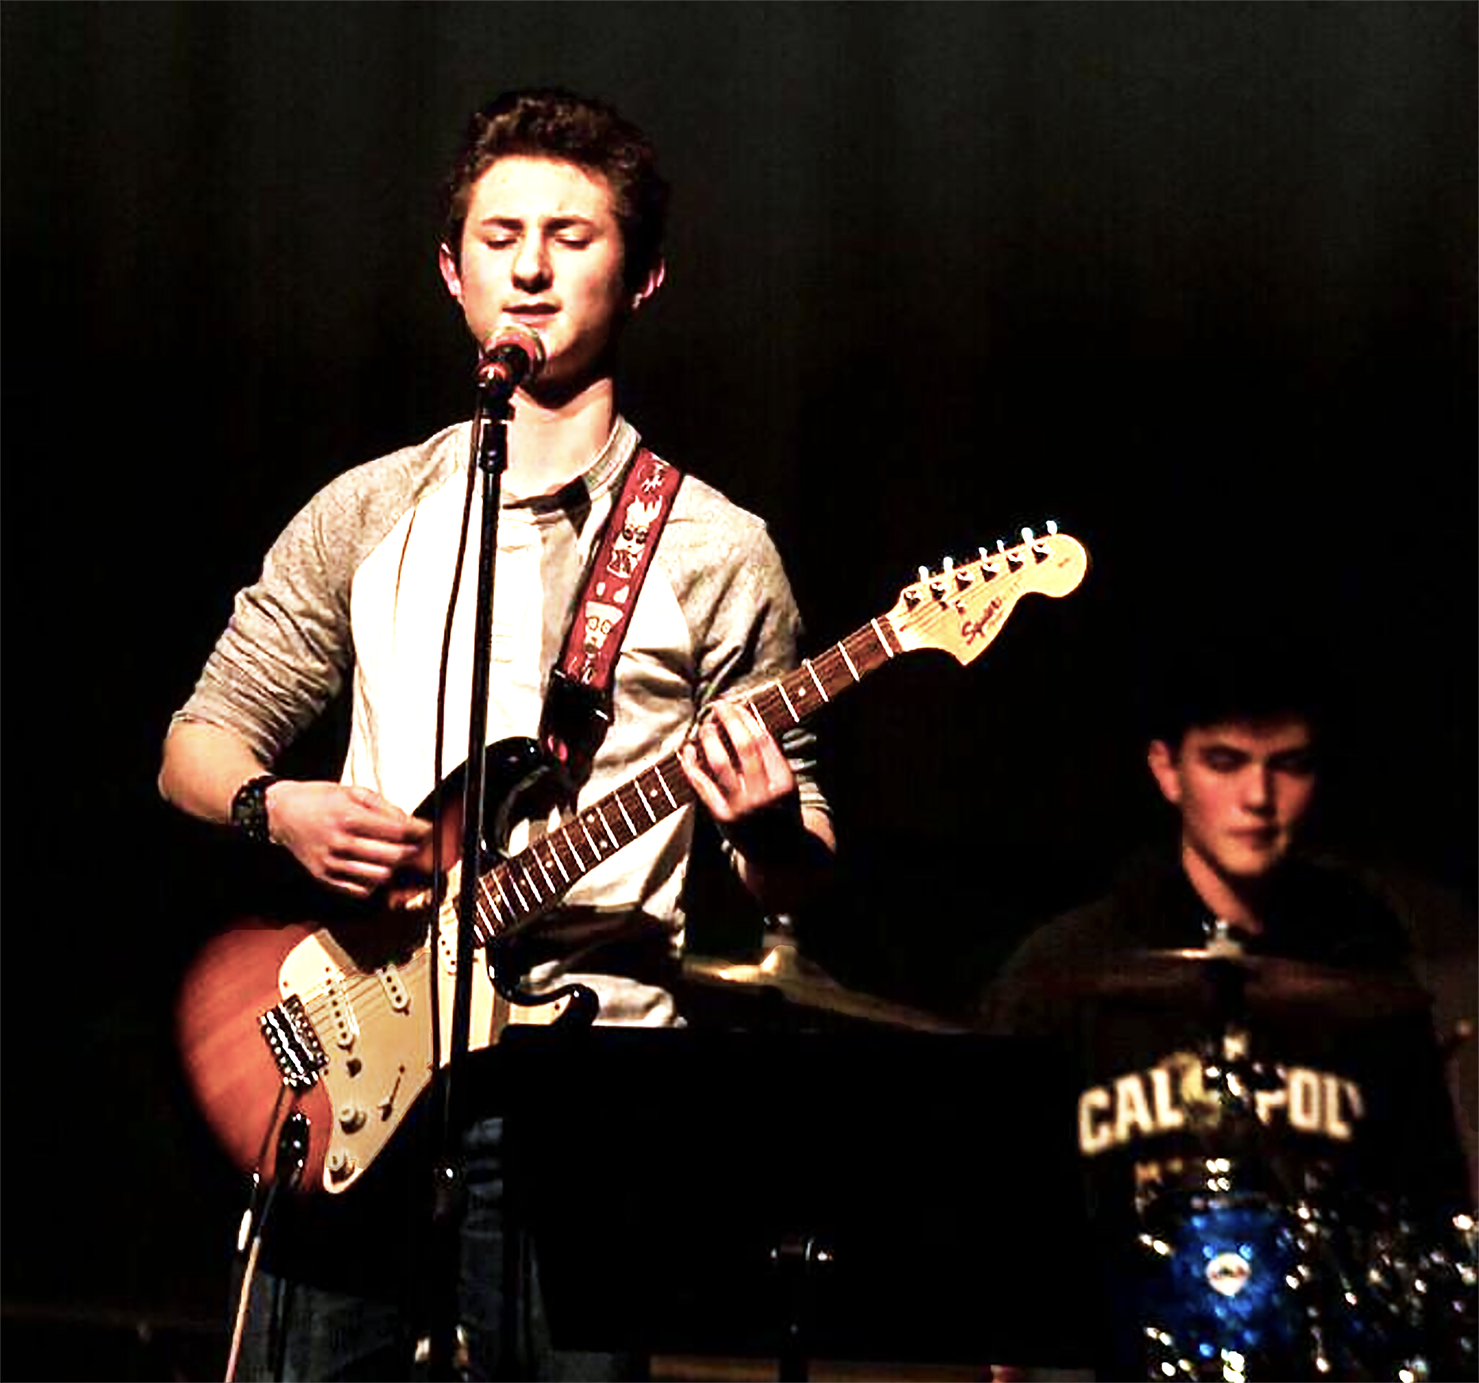 Freshman Austin Kelly performs for his peers during Battle of the Bands.